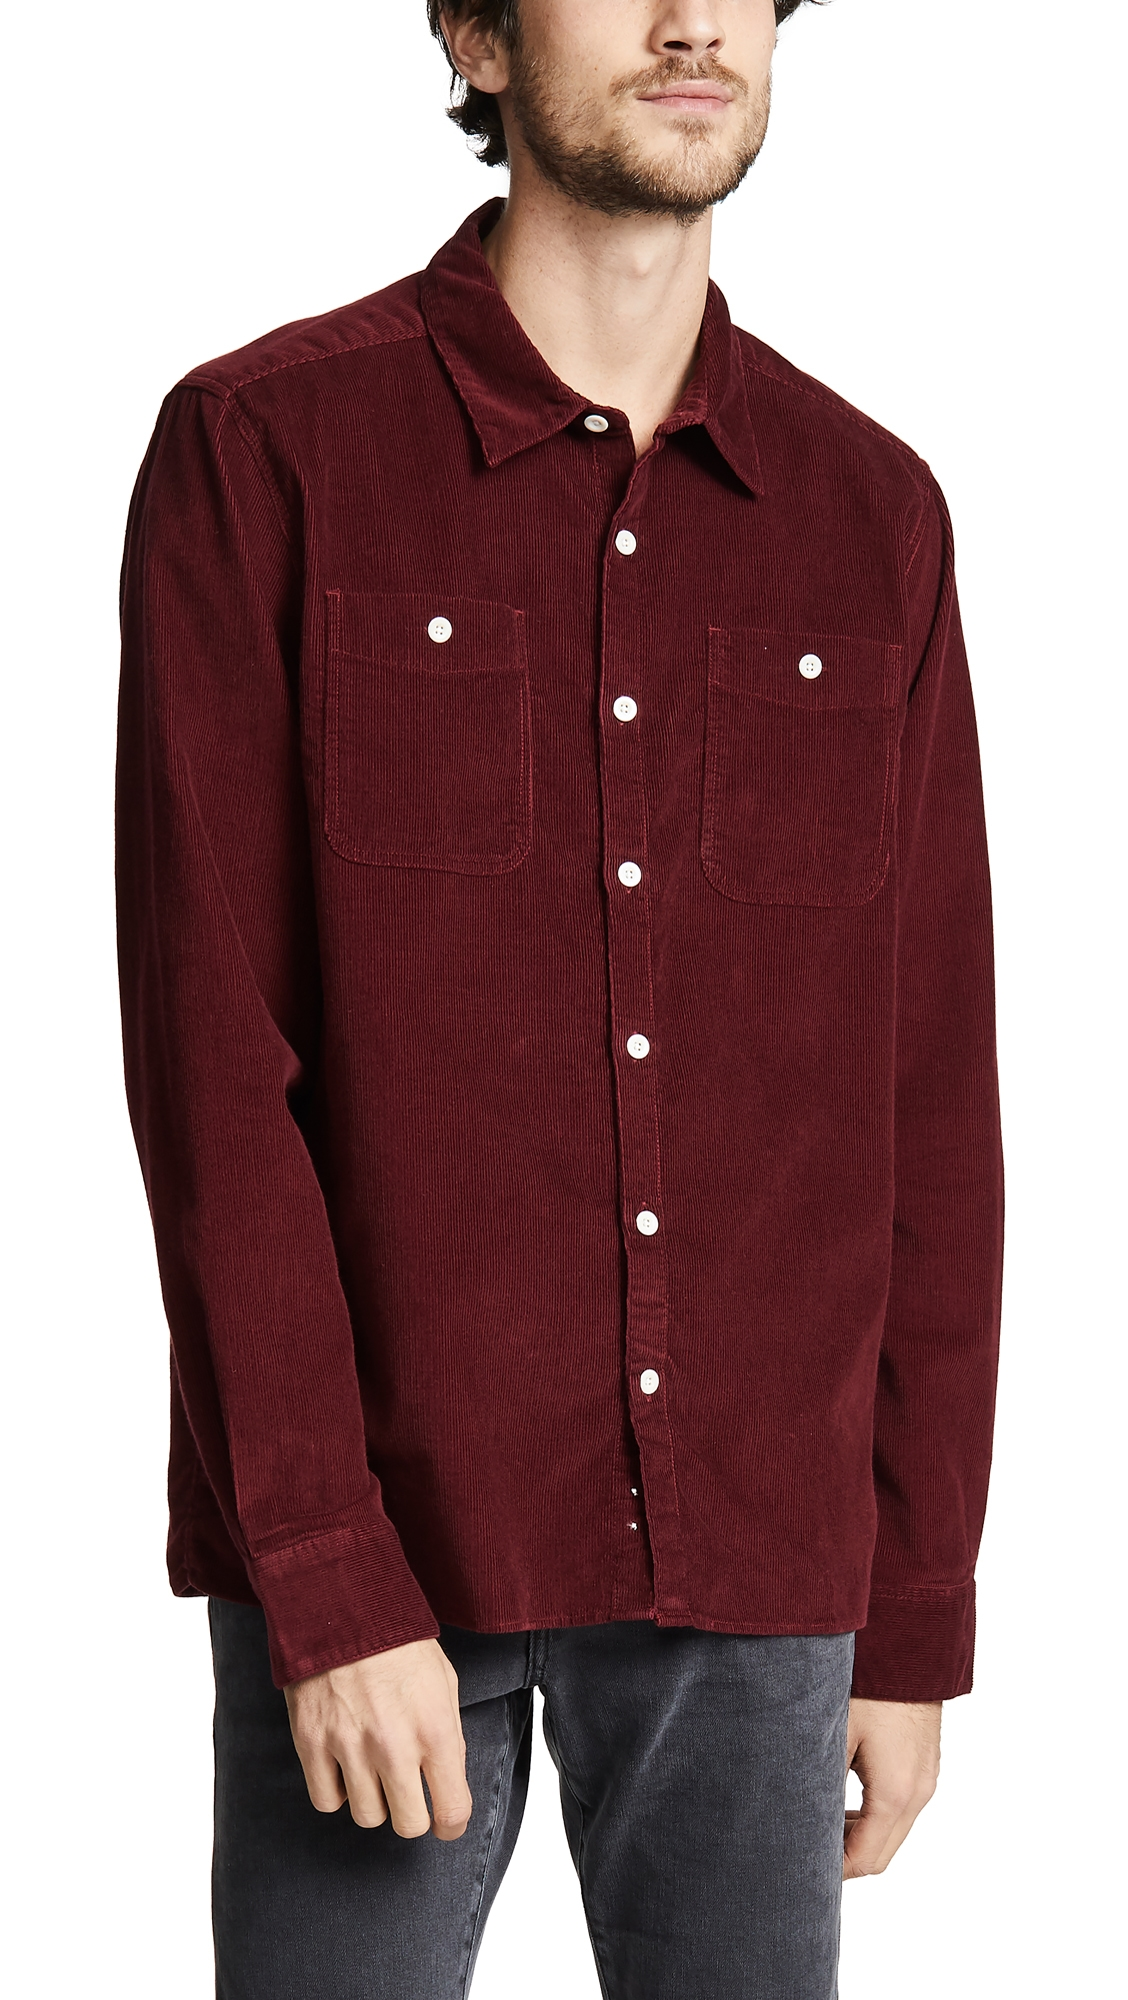 ALBAM Otto Cotton-Corduroy Shirt - Burgundy in Maroon